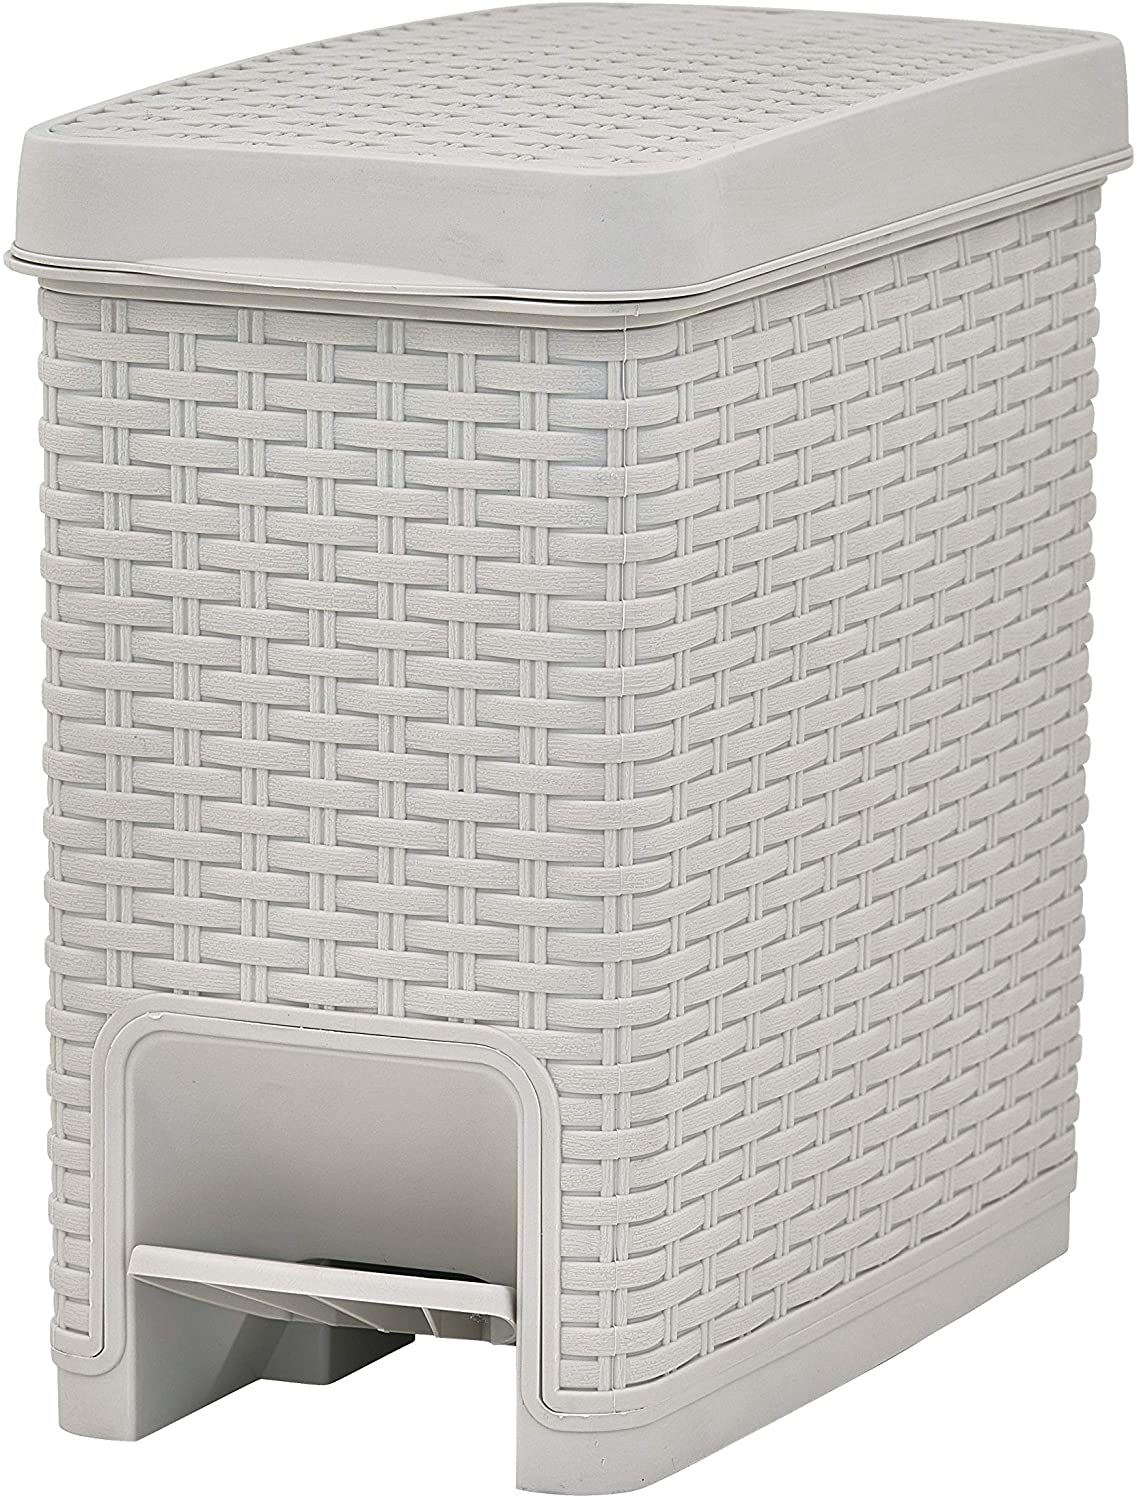 Superio Slim Trash Can Rattan Style 6.5 Qt. Beige, Step On Pedal Trash Can with Lid Slim Size